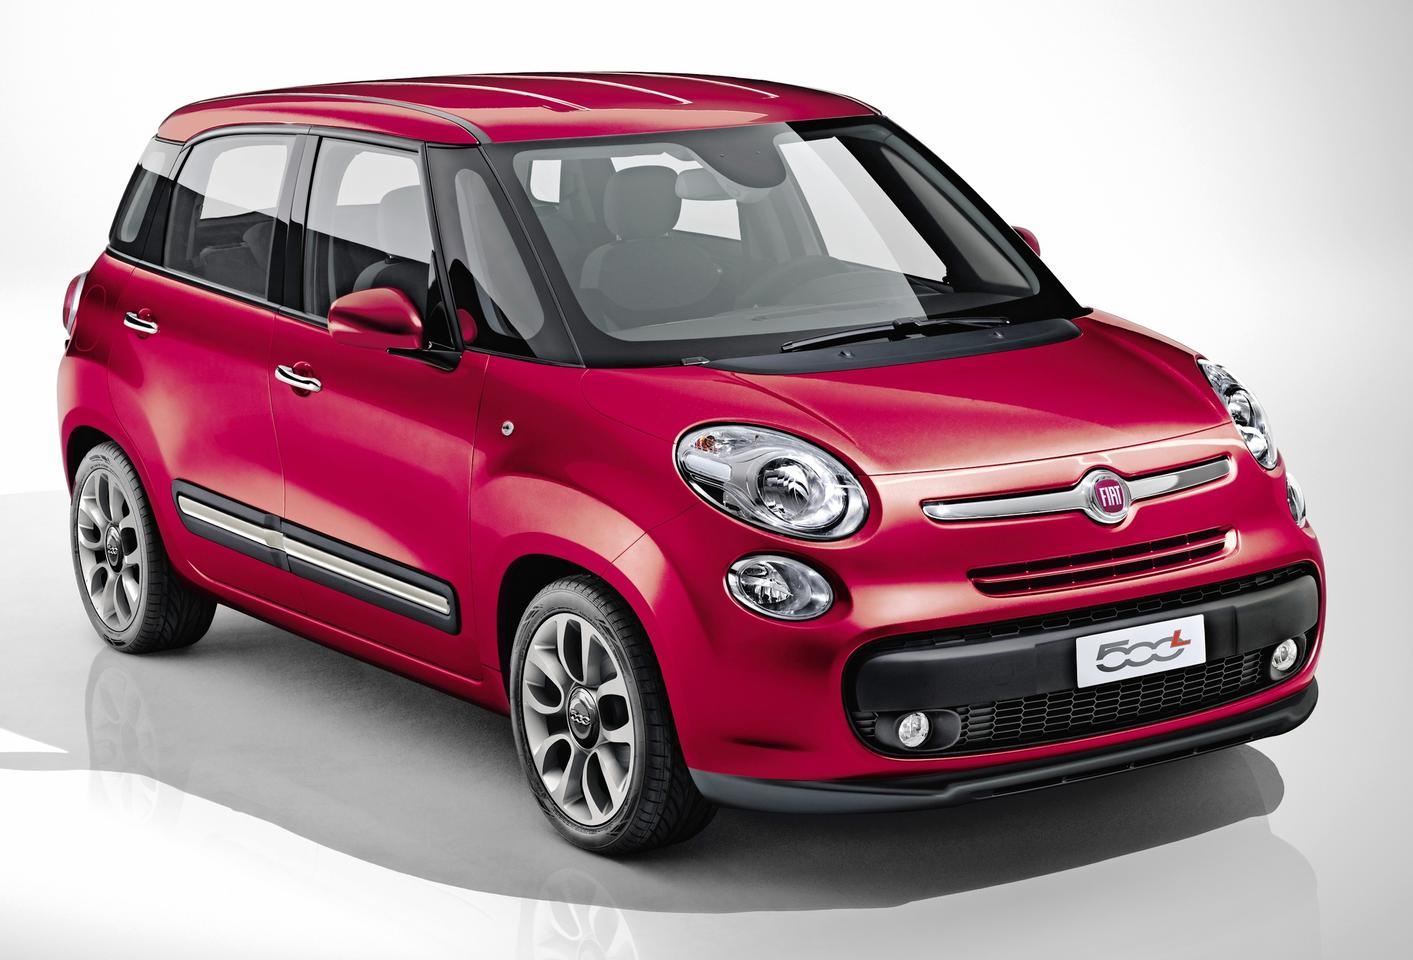 Fiat's new 500L will debut at the Geneva Motor Show in March and will hit European markets in late 2012, with a choice of two petrol engines and the 1.3 liter MultiJet II turbodiesel engine.